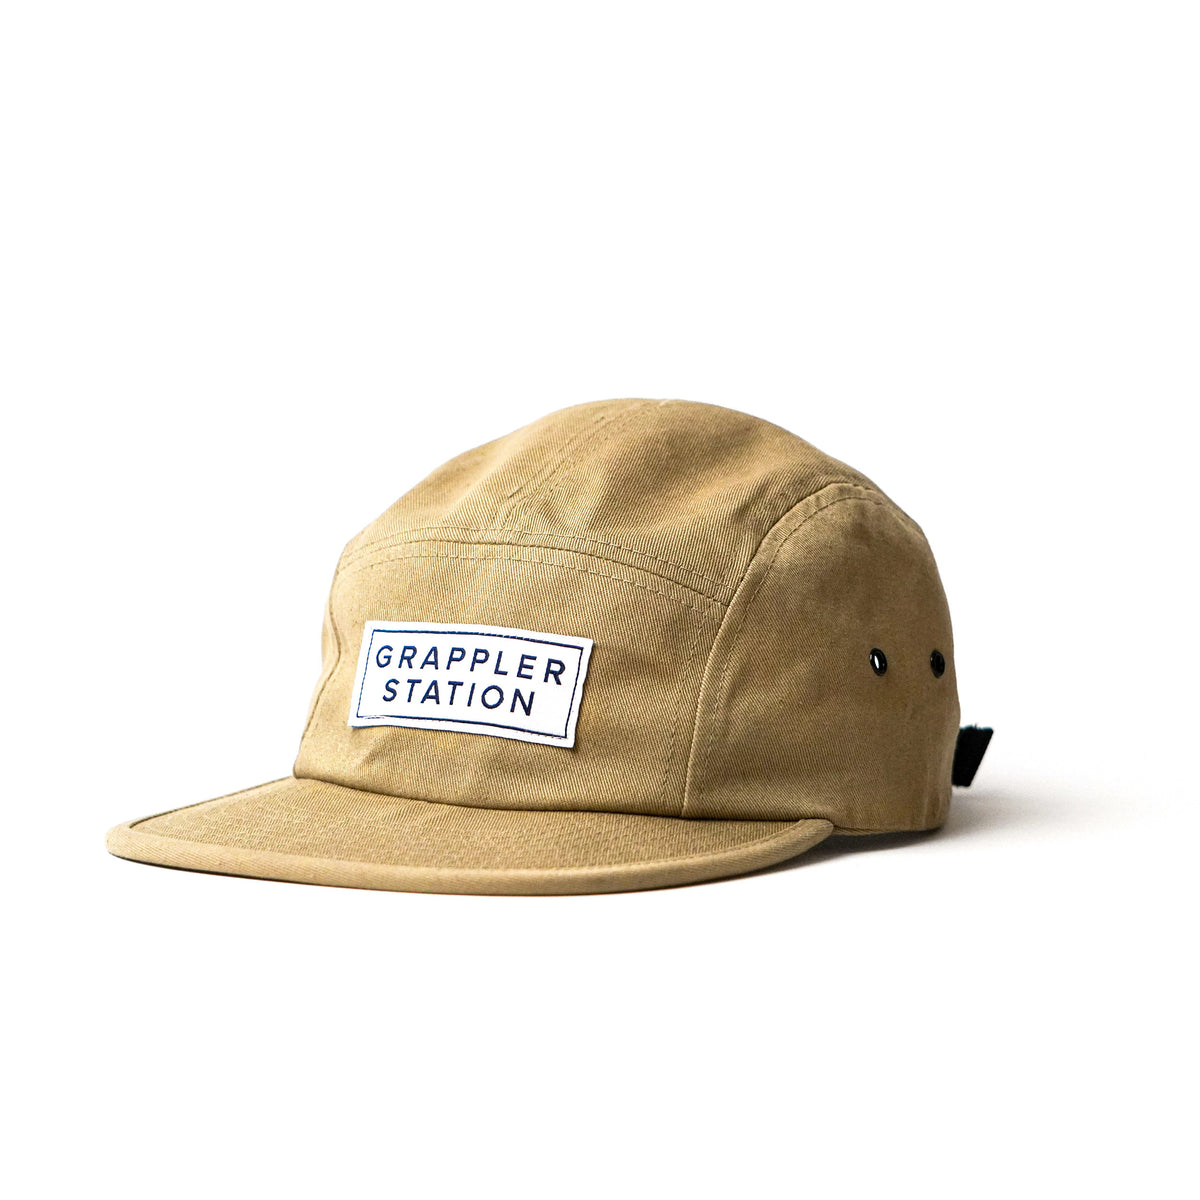 Grappler Jockey Cap